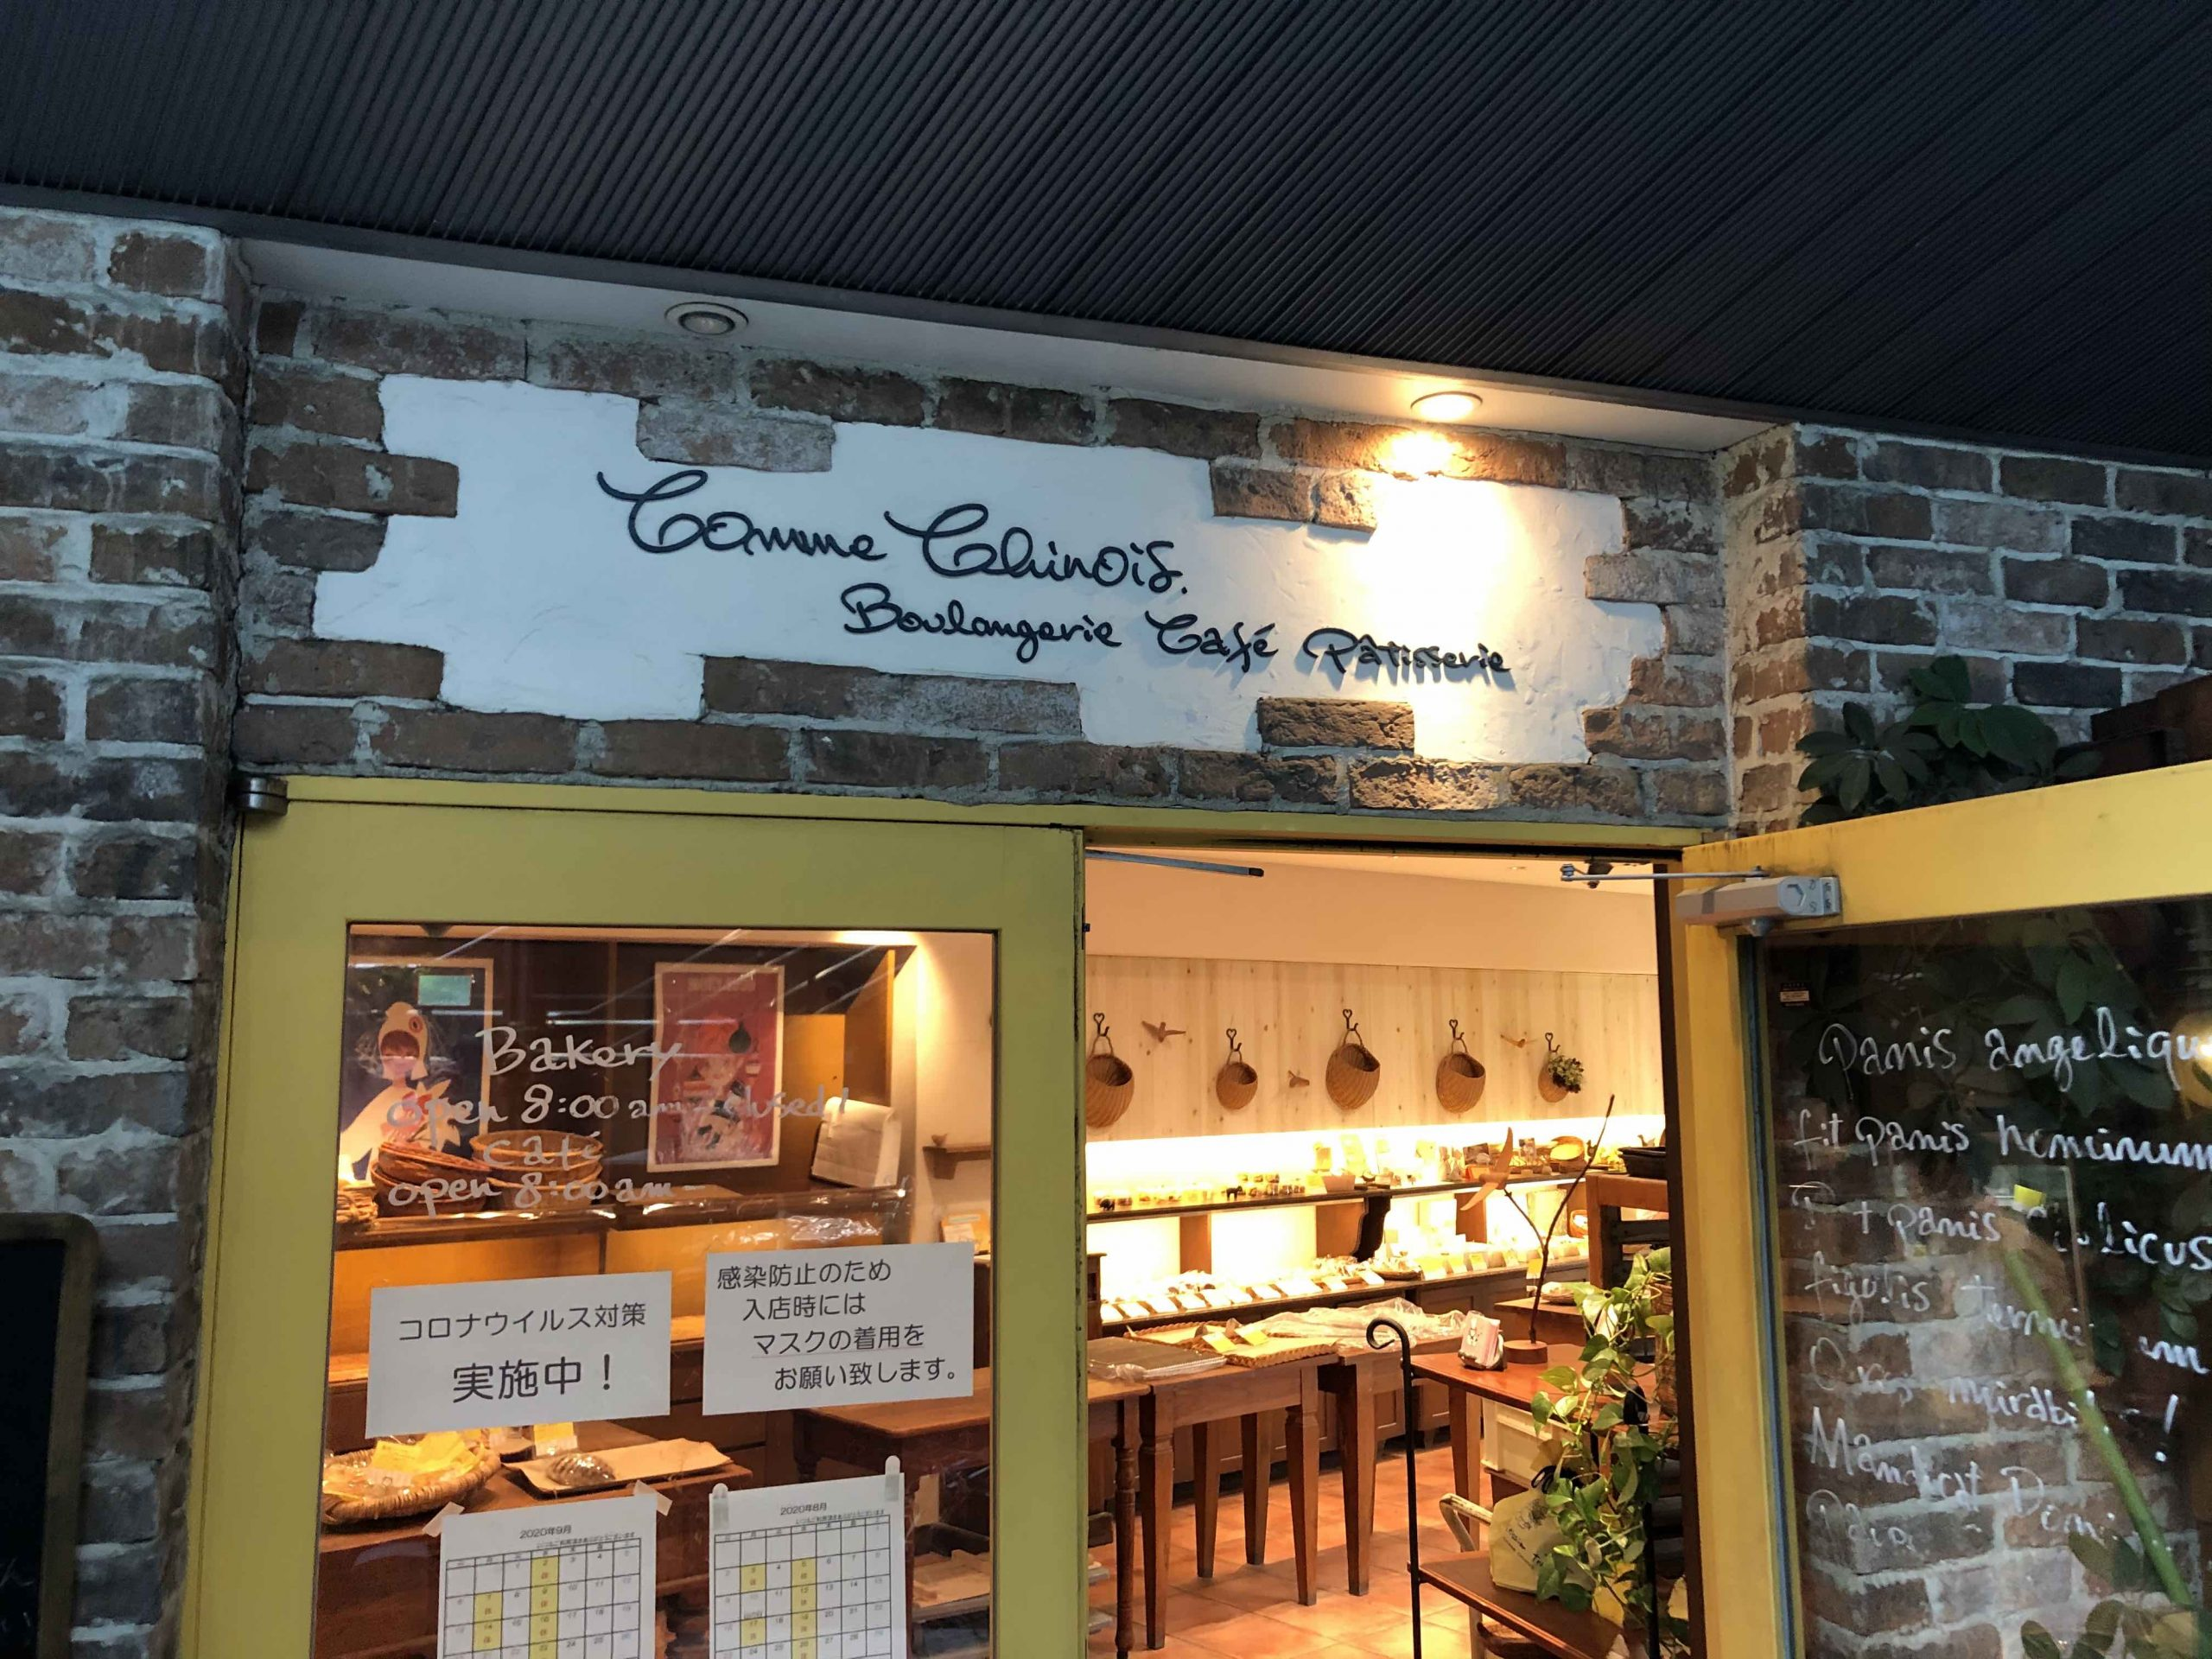 comme chinois boulangerie storefront